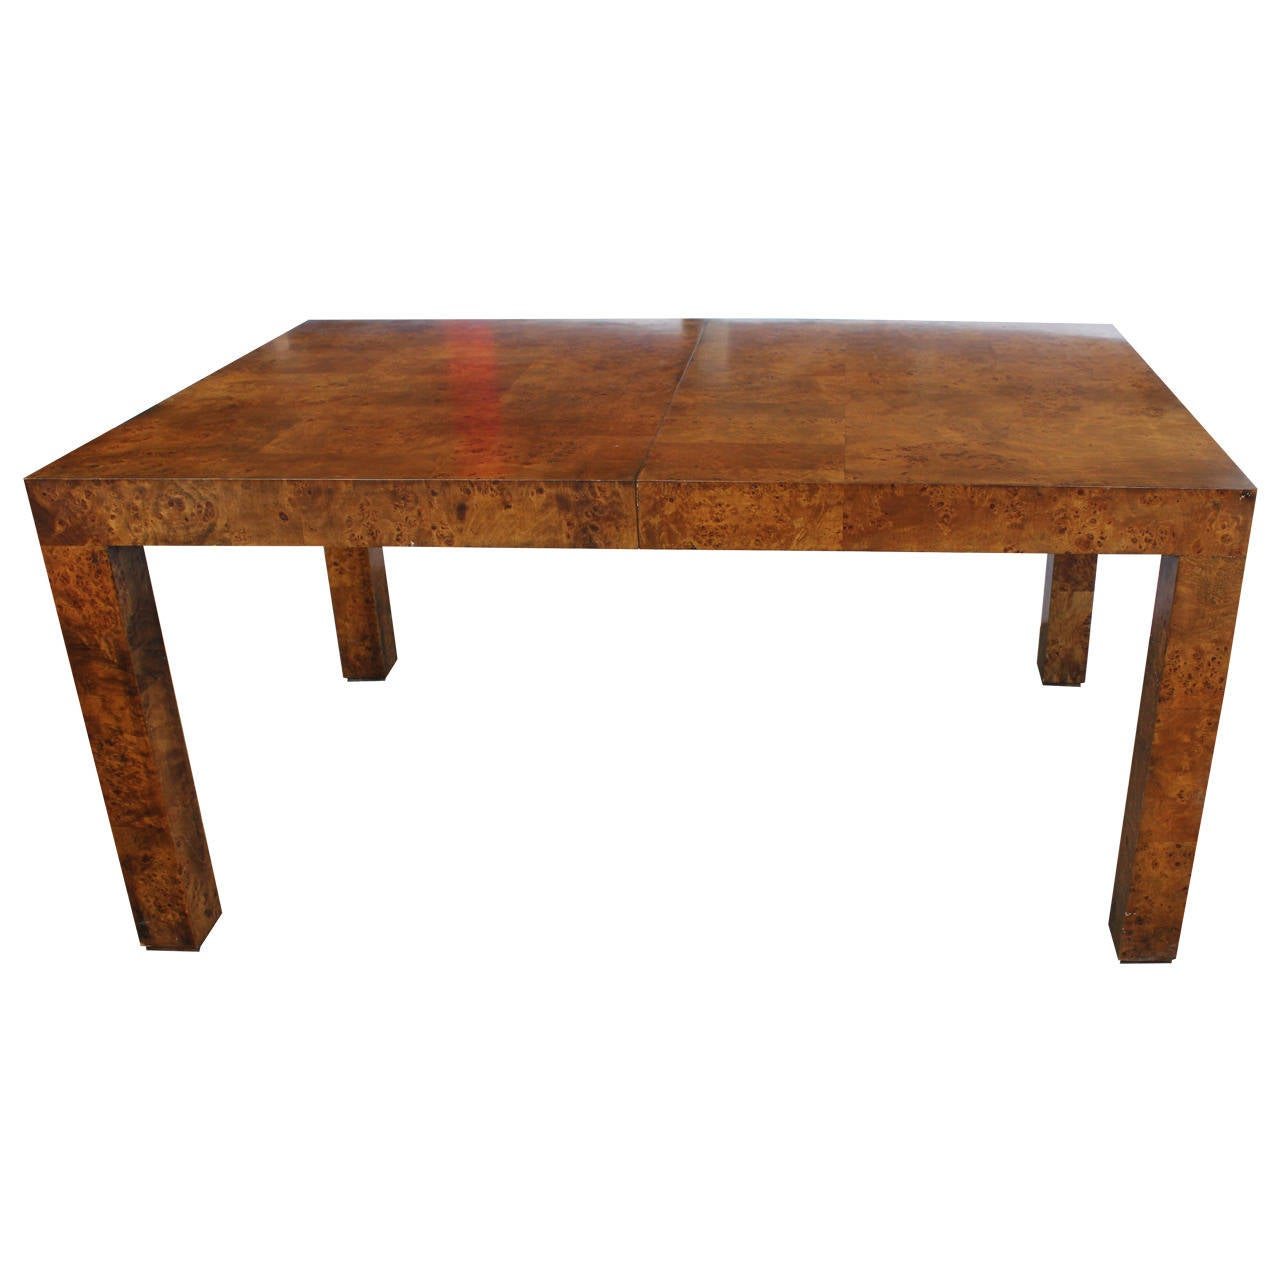 Parsons style burl wood dining table by milo baughman for for Dining room table styles